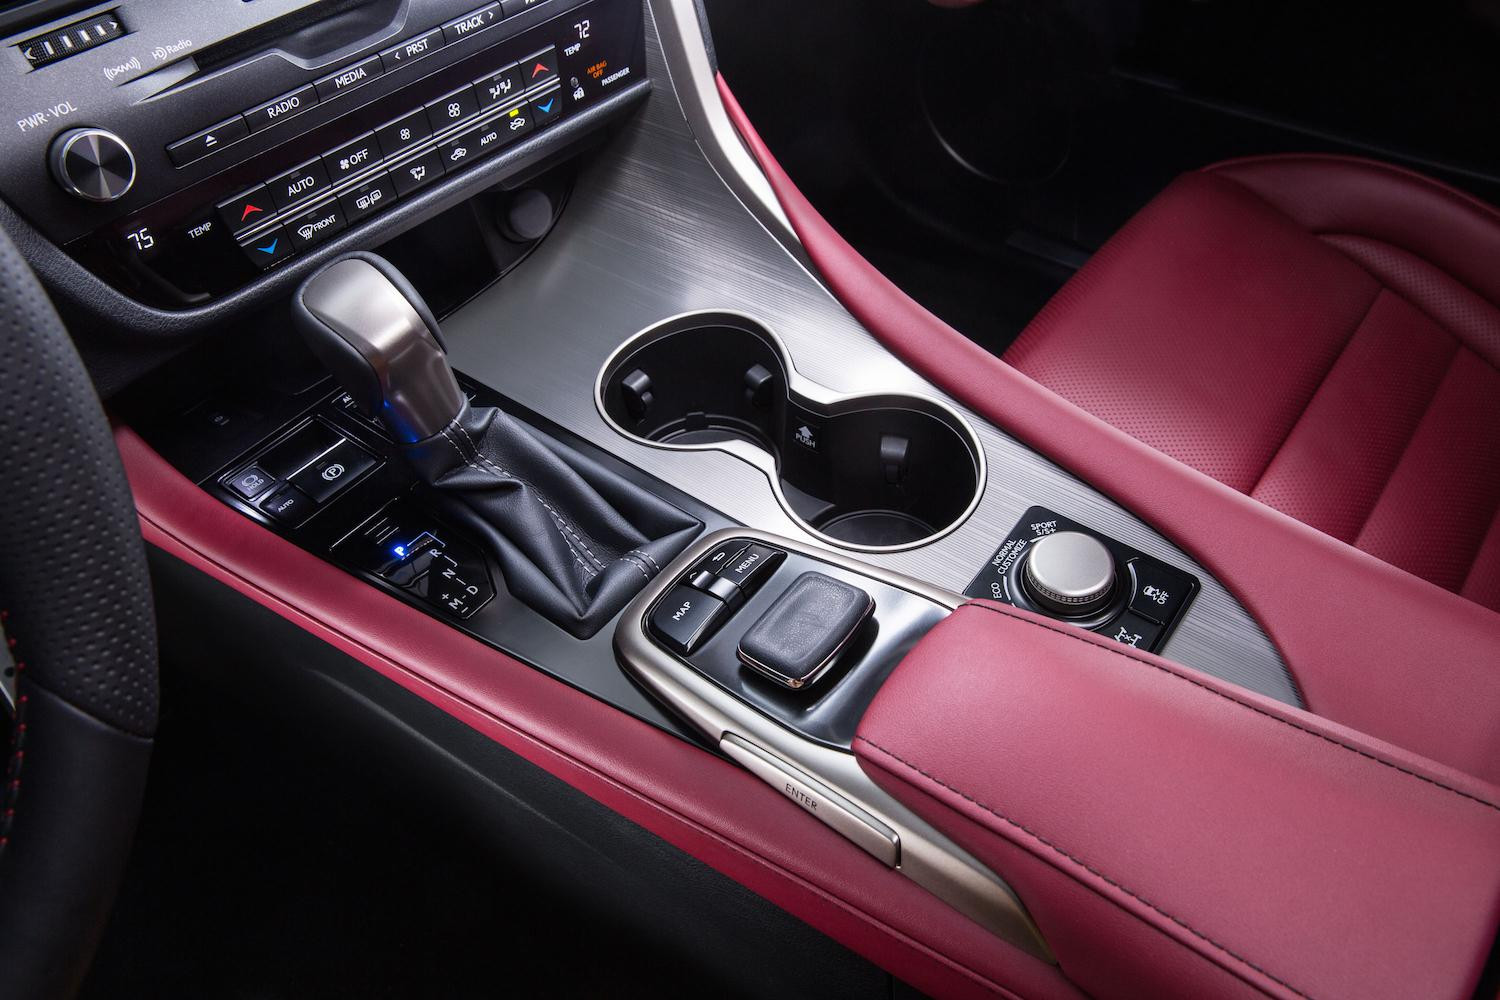 magnificent-design-of-the-red-leather-seats-as-the-lexus-rc-2016-interior-ideas-with-black-dash